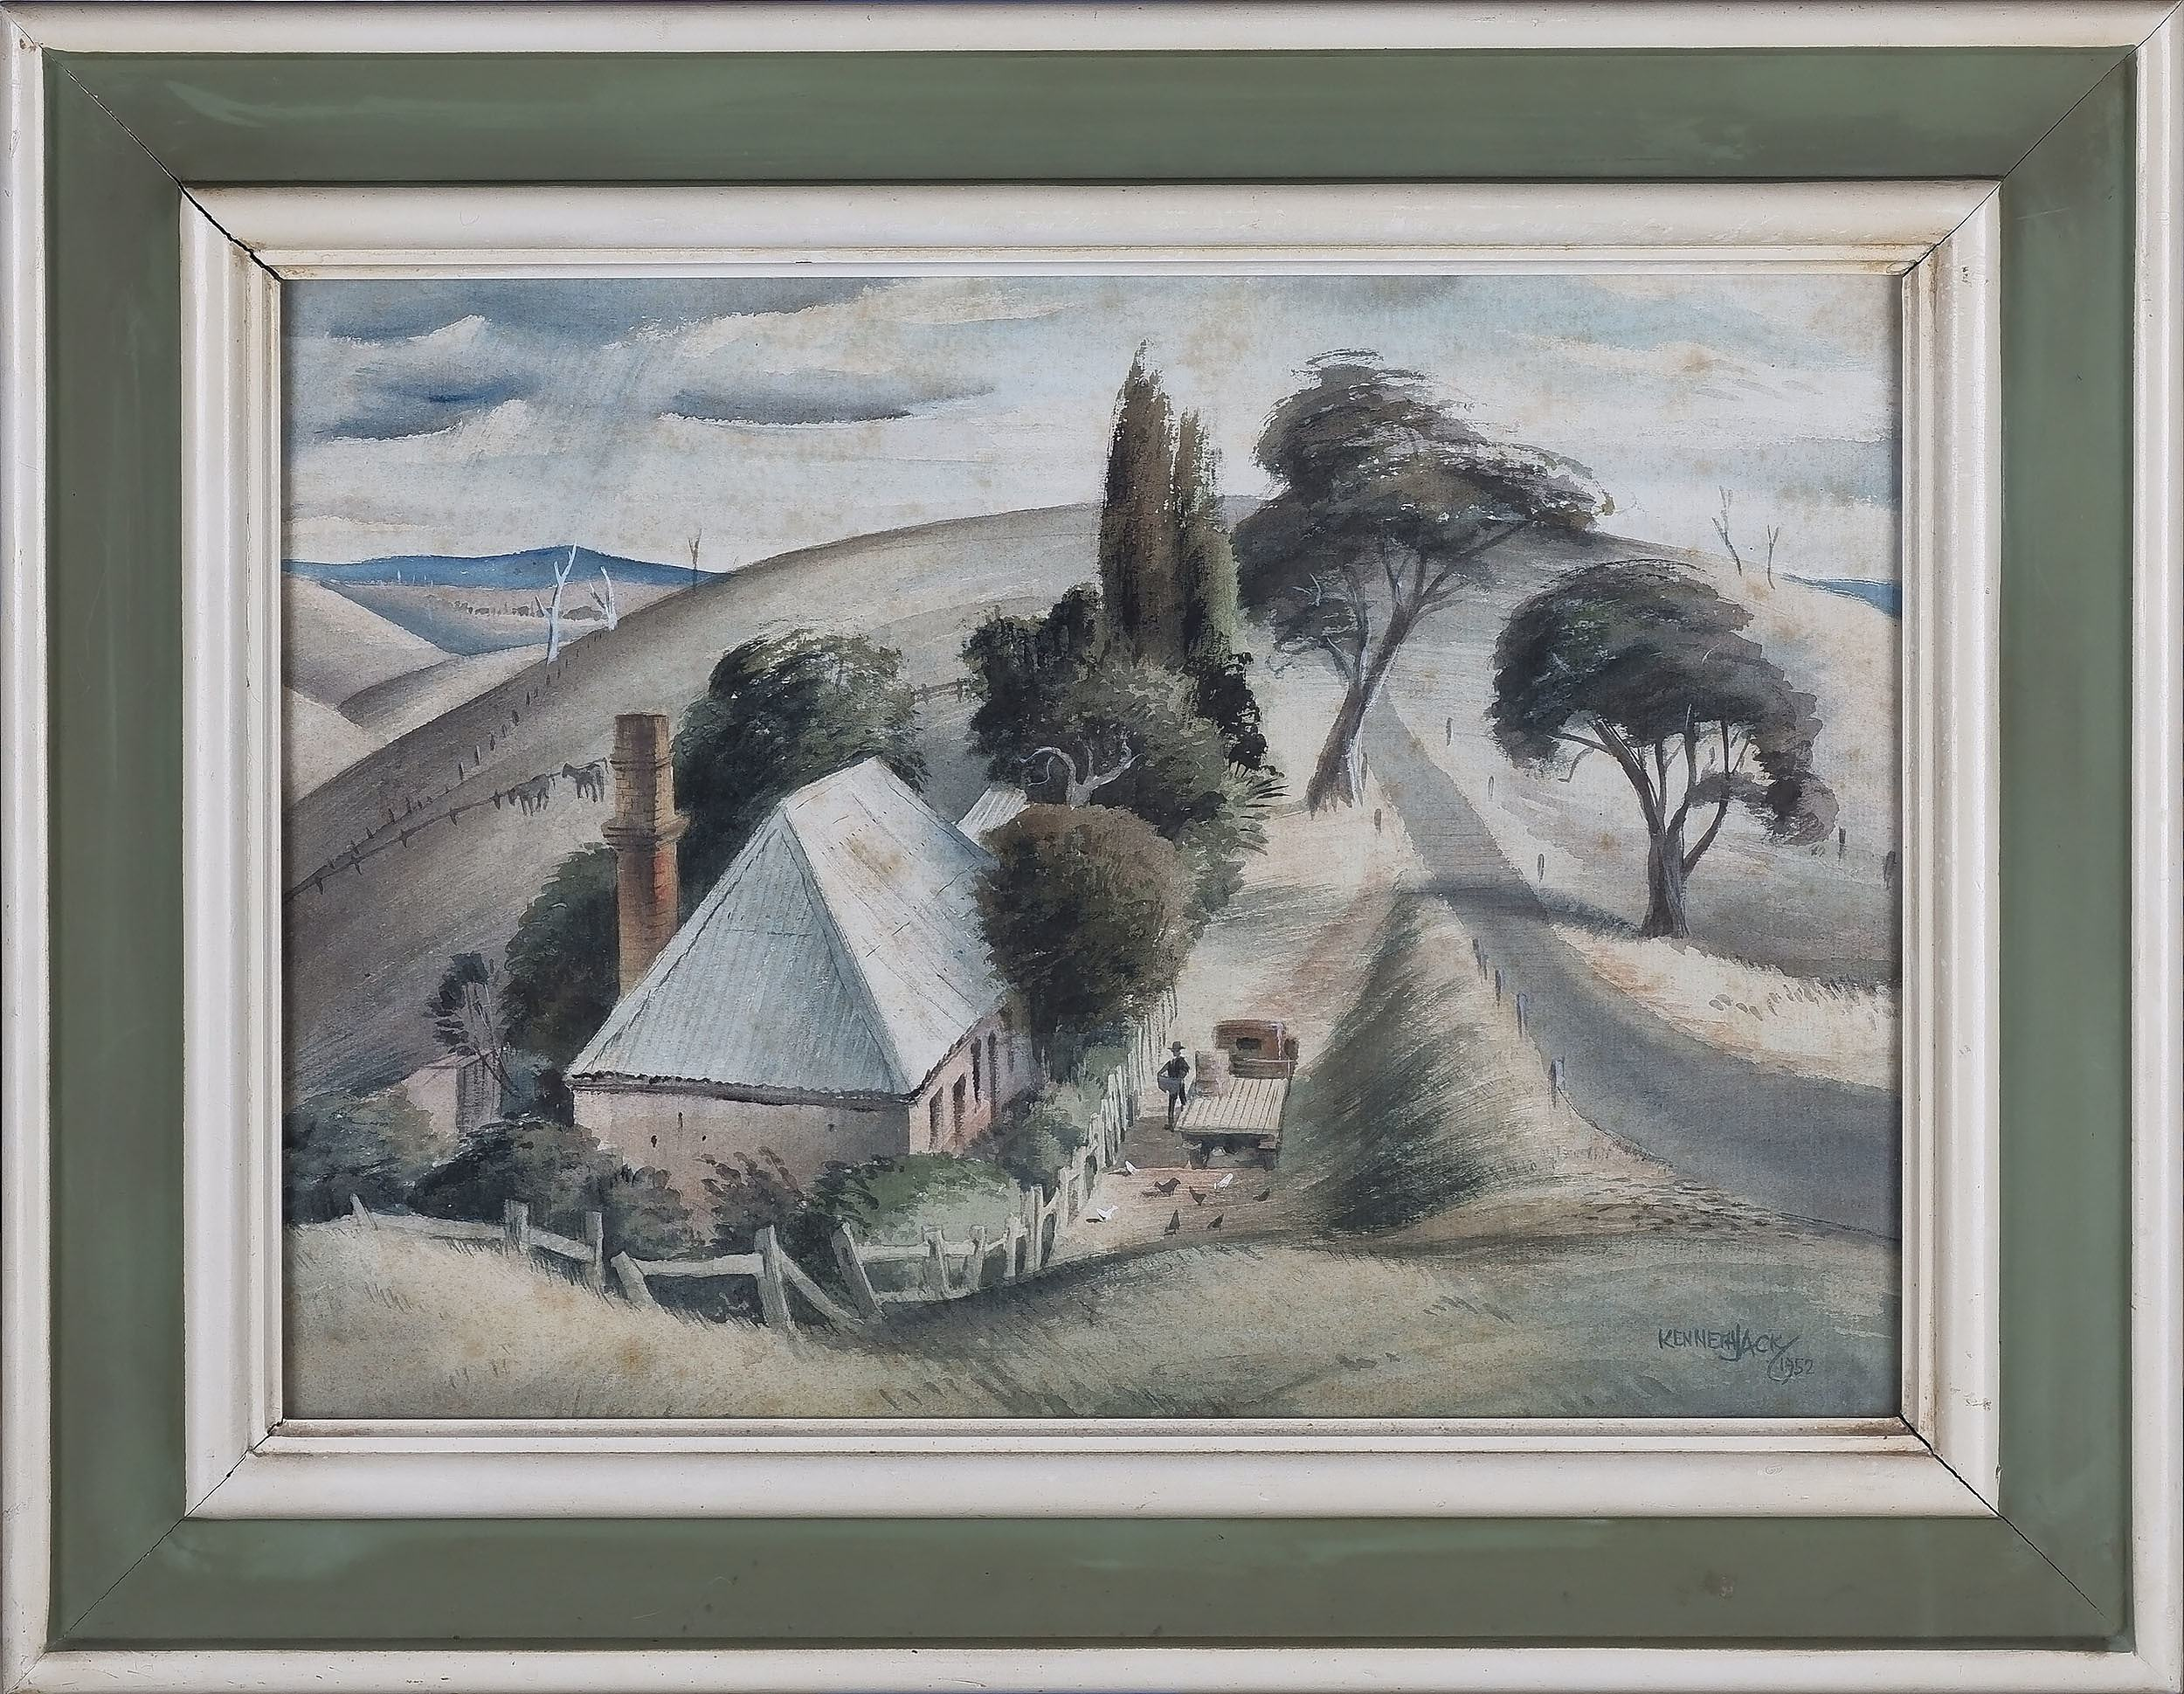 'Kenneth William David Jack (1924-2006) On The Road To Bacchus Marsh Victoria Watercolour'